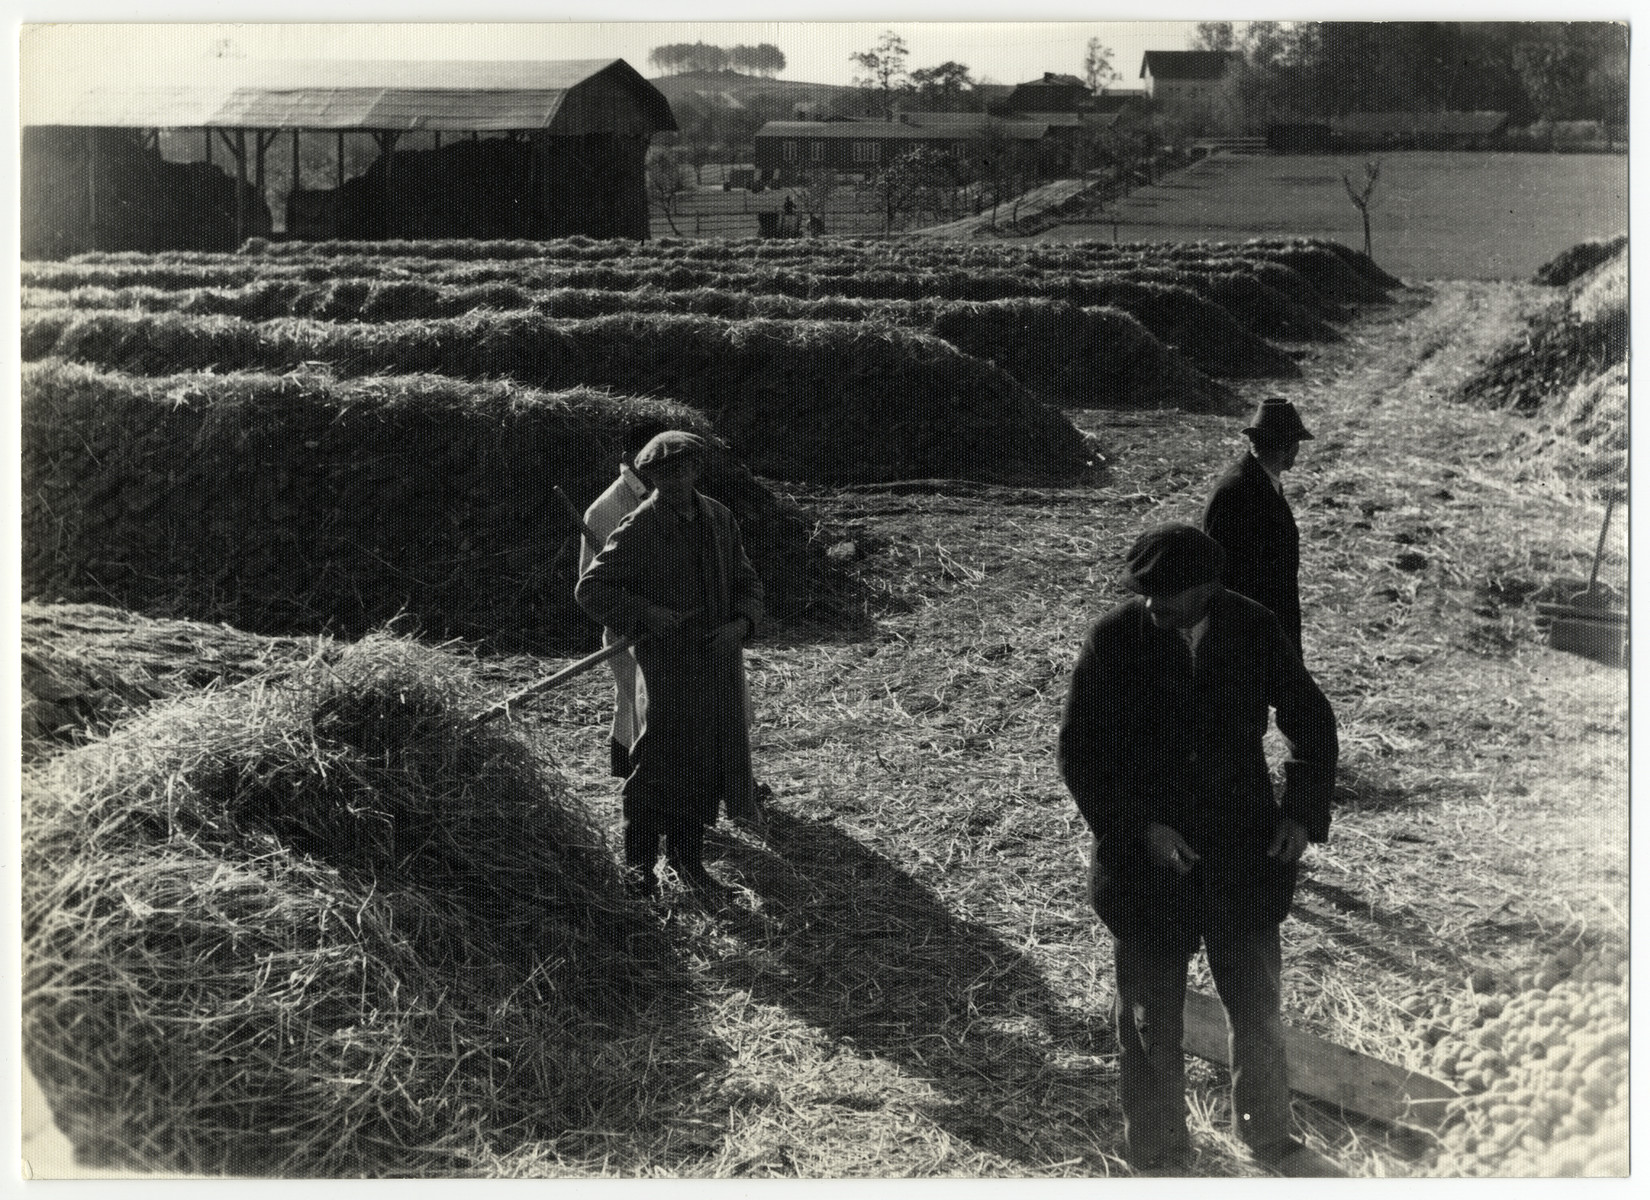 Workers walk past piles of hay covering potatoes buried underneath in the Lipa farm labor camp.